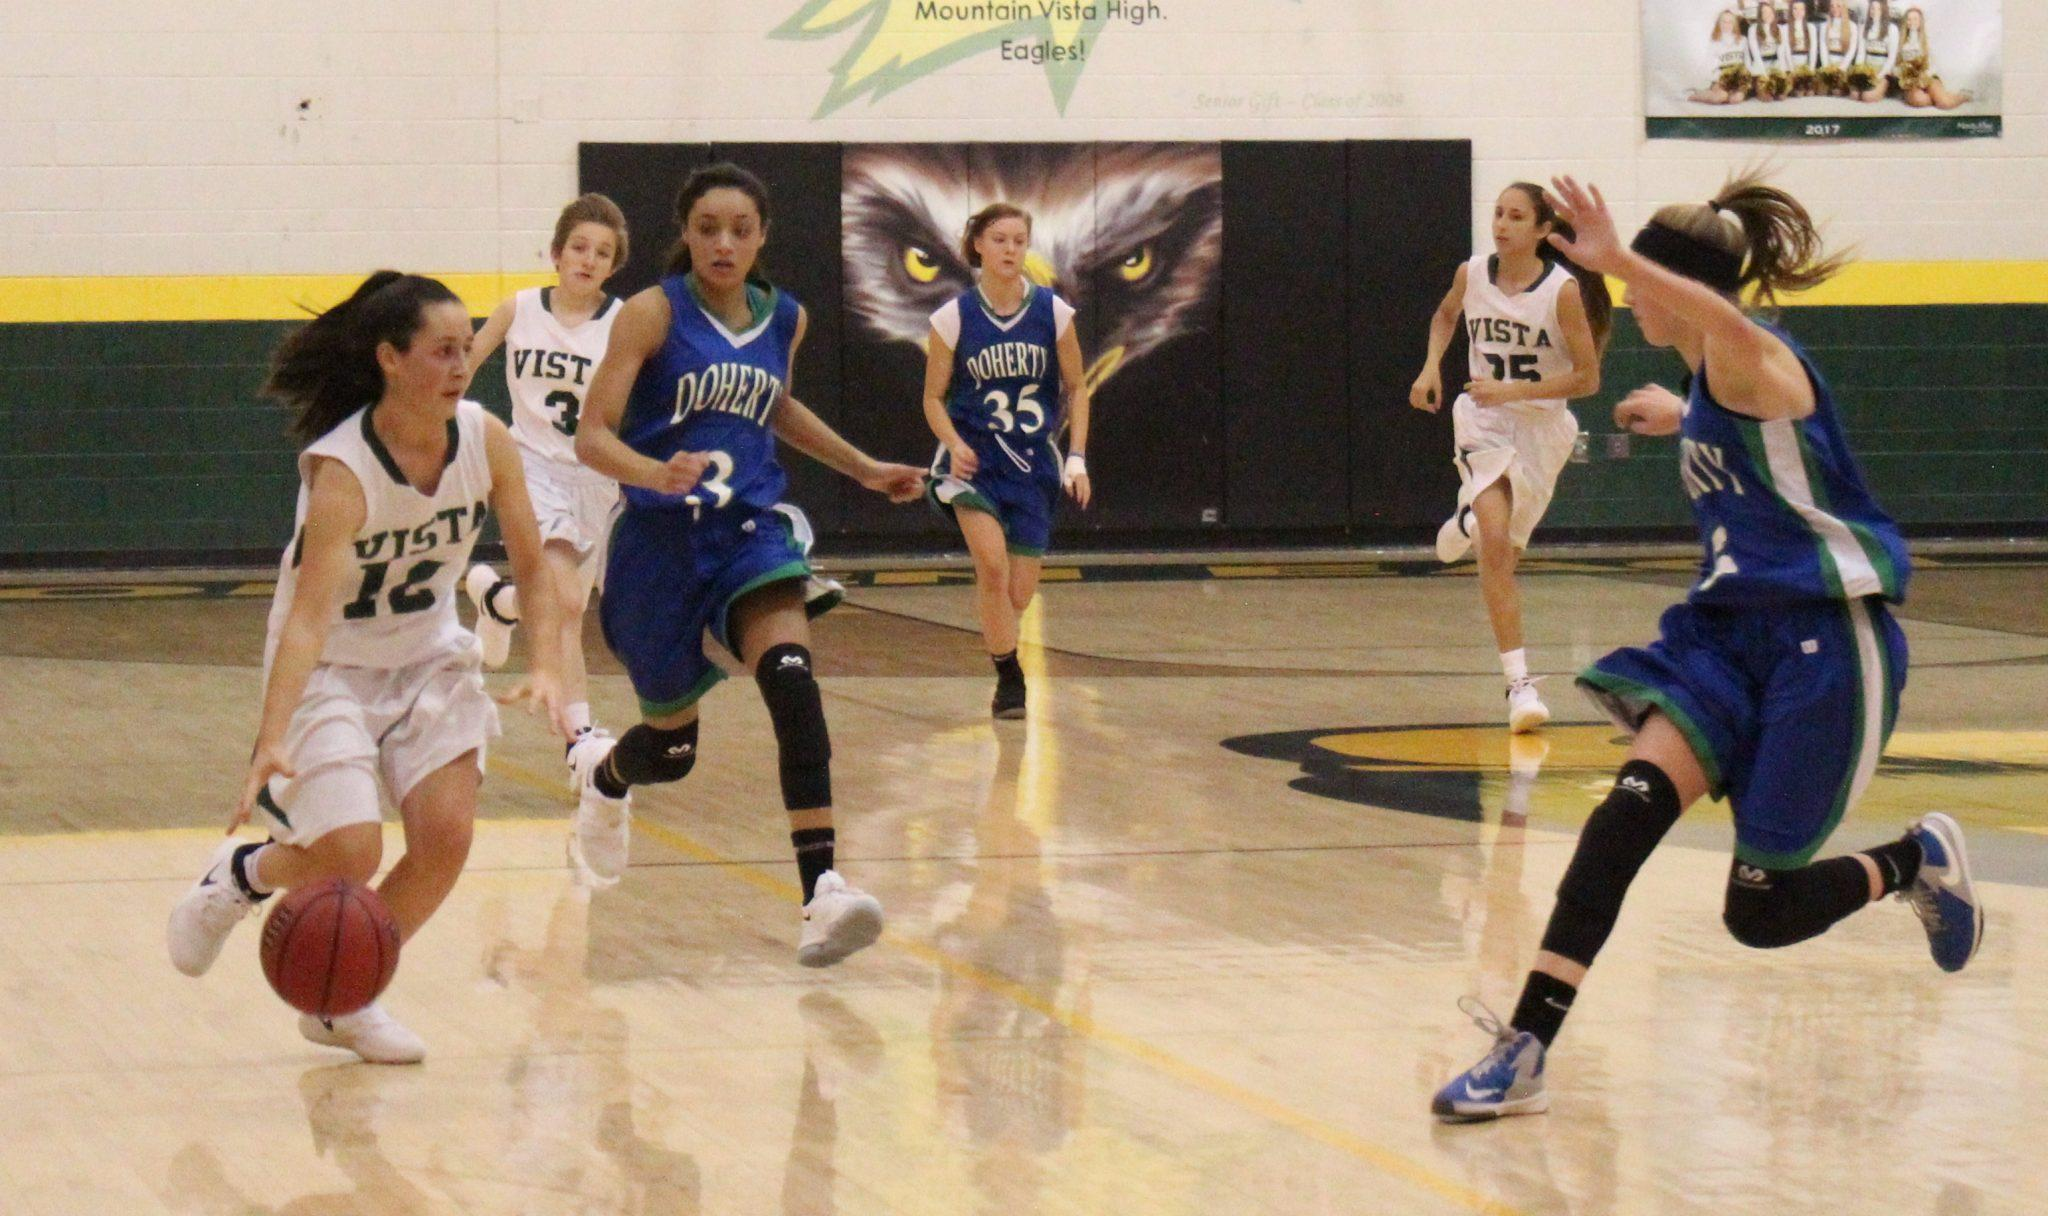 Photo Gallery: Women's Sophomore Basketball vs. Doherty High School